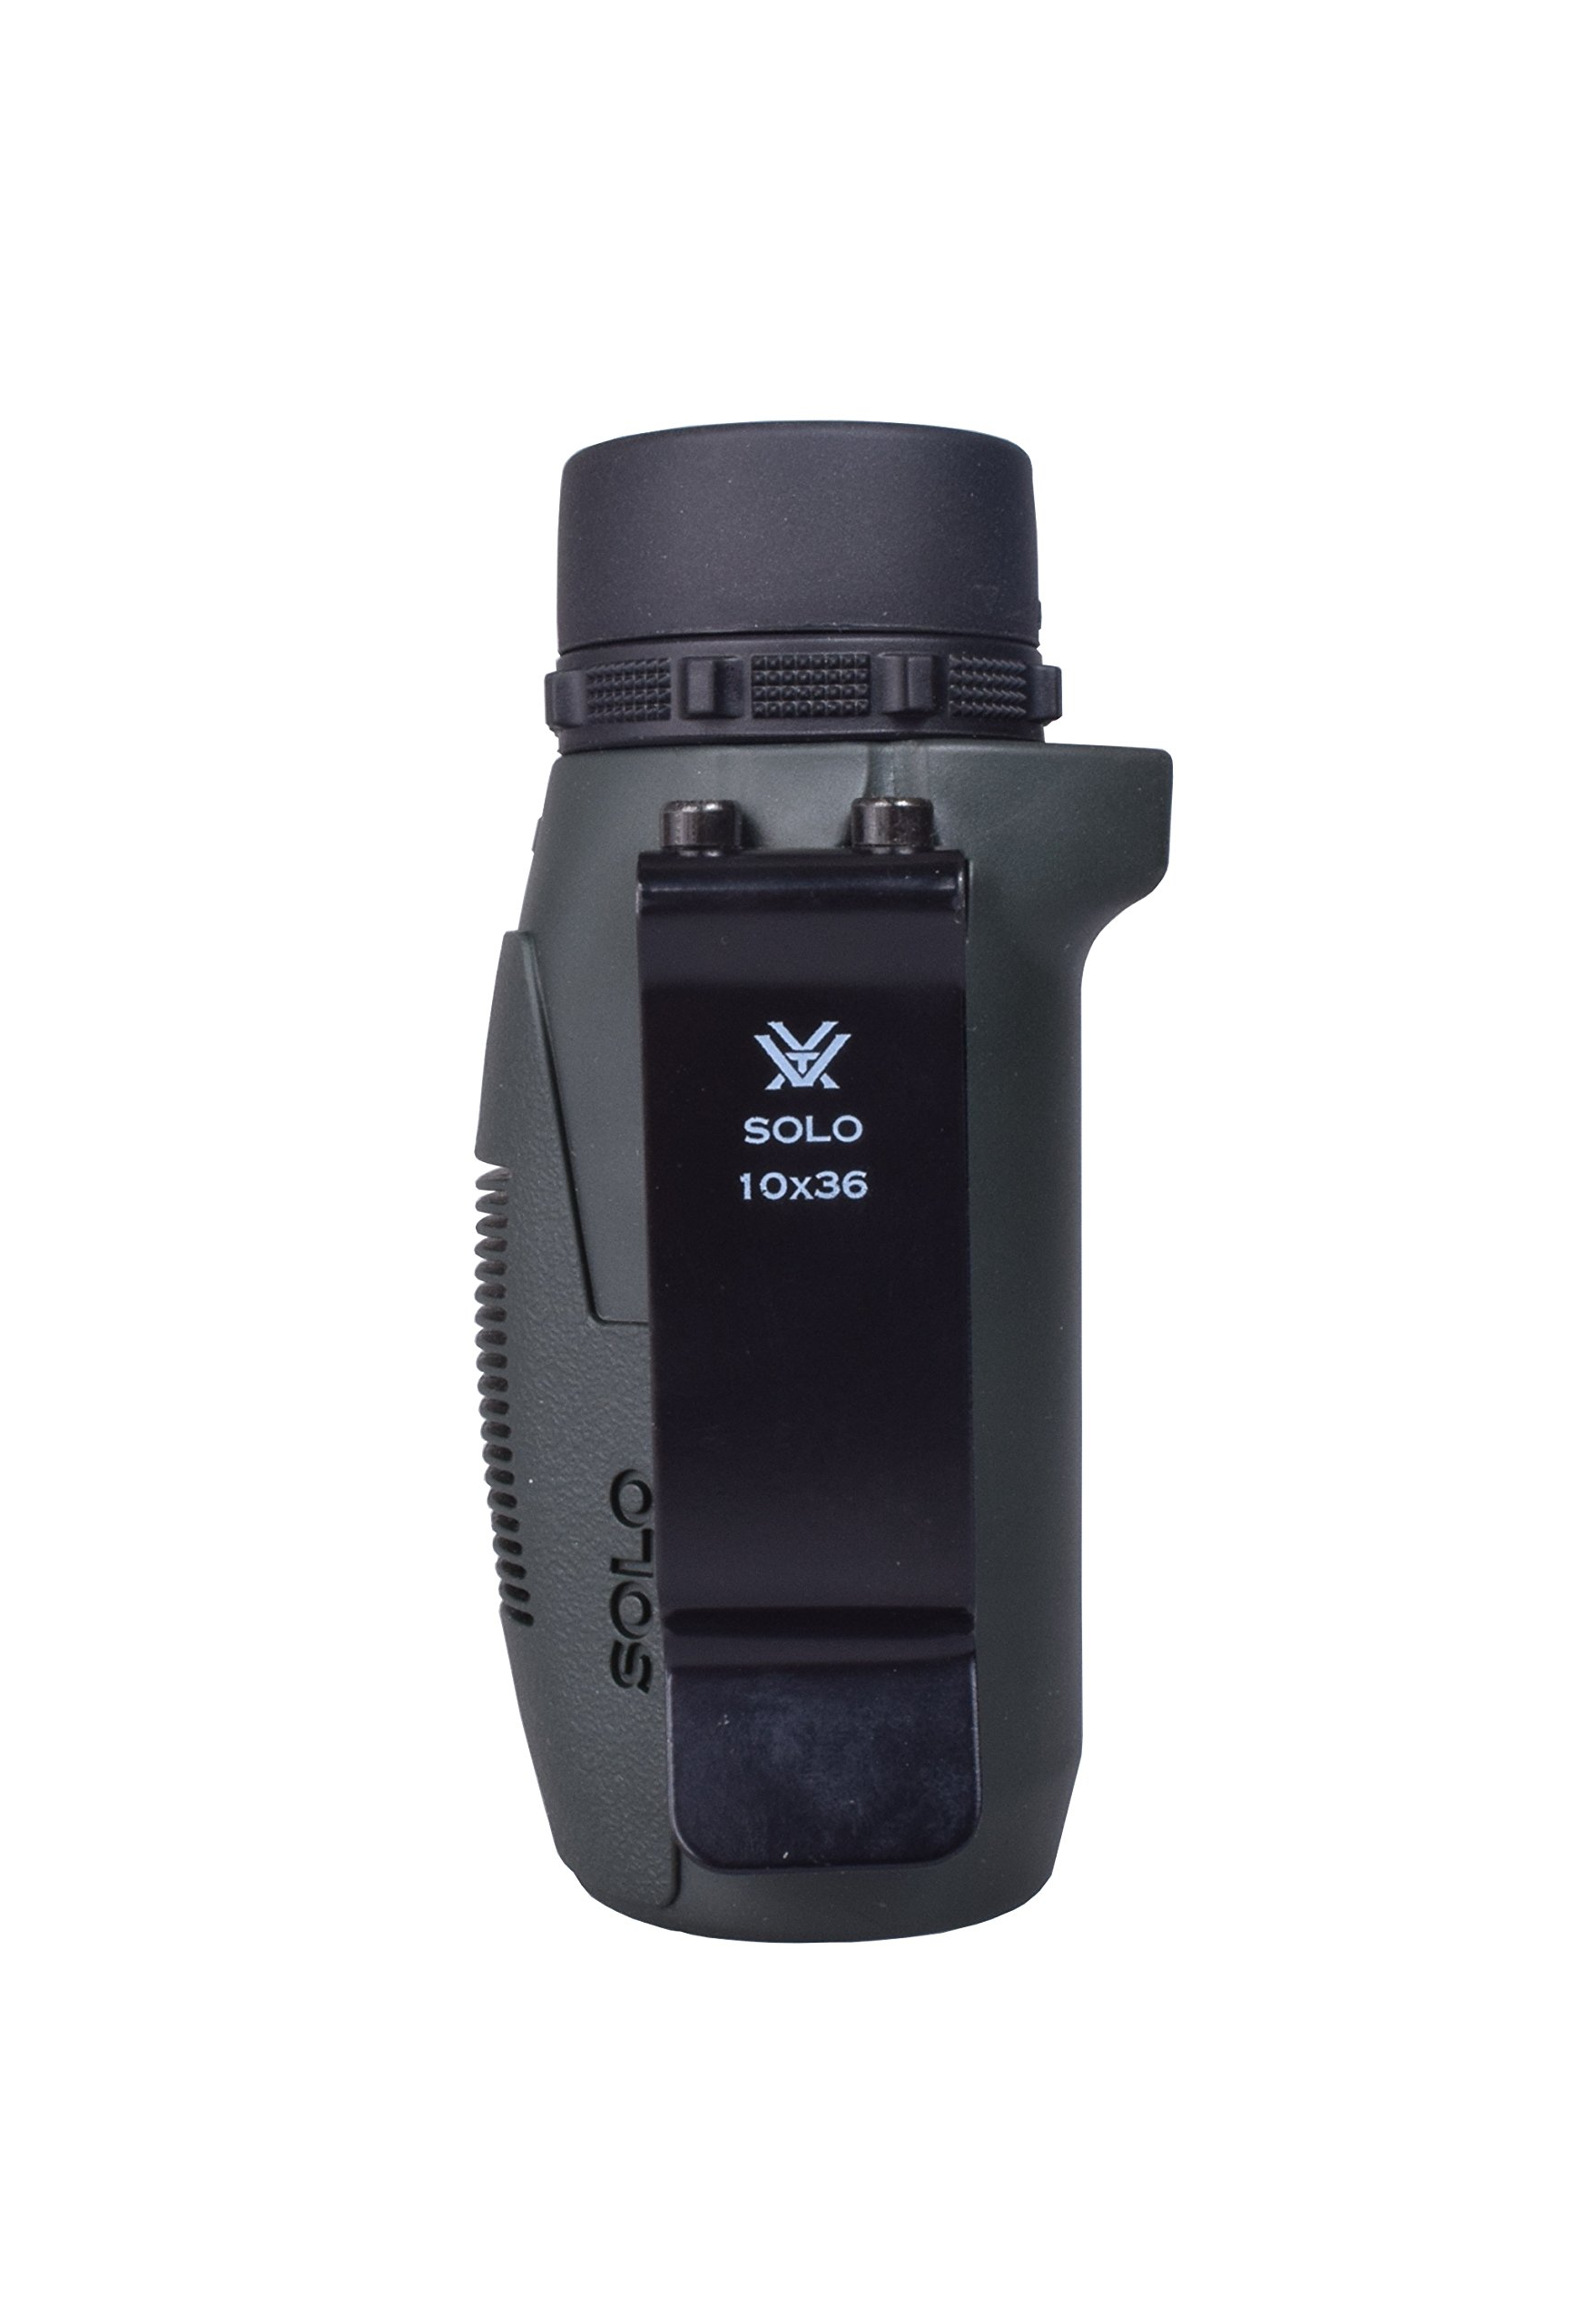 Vortex Solo 10x36 mm Monocular by Vortex Optics (Image #2)